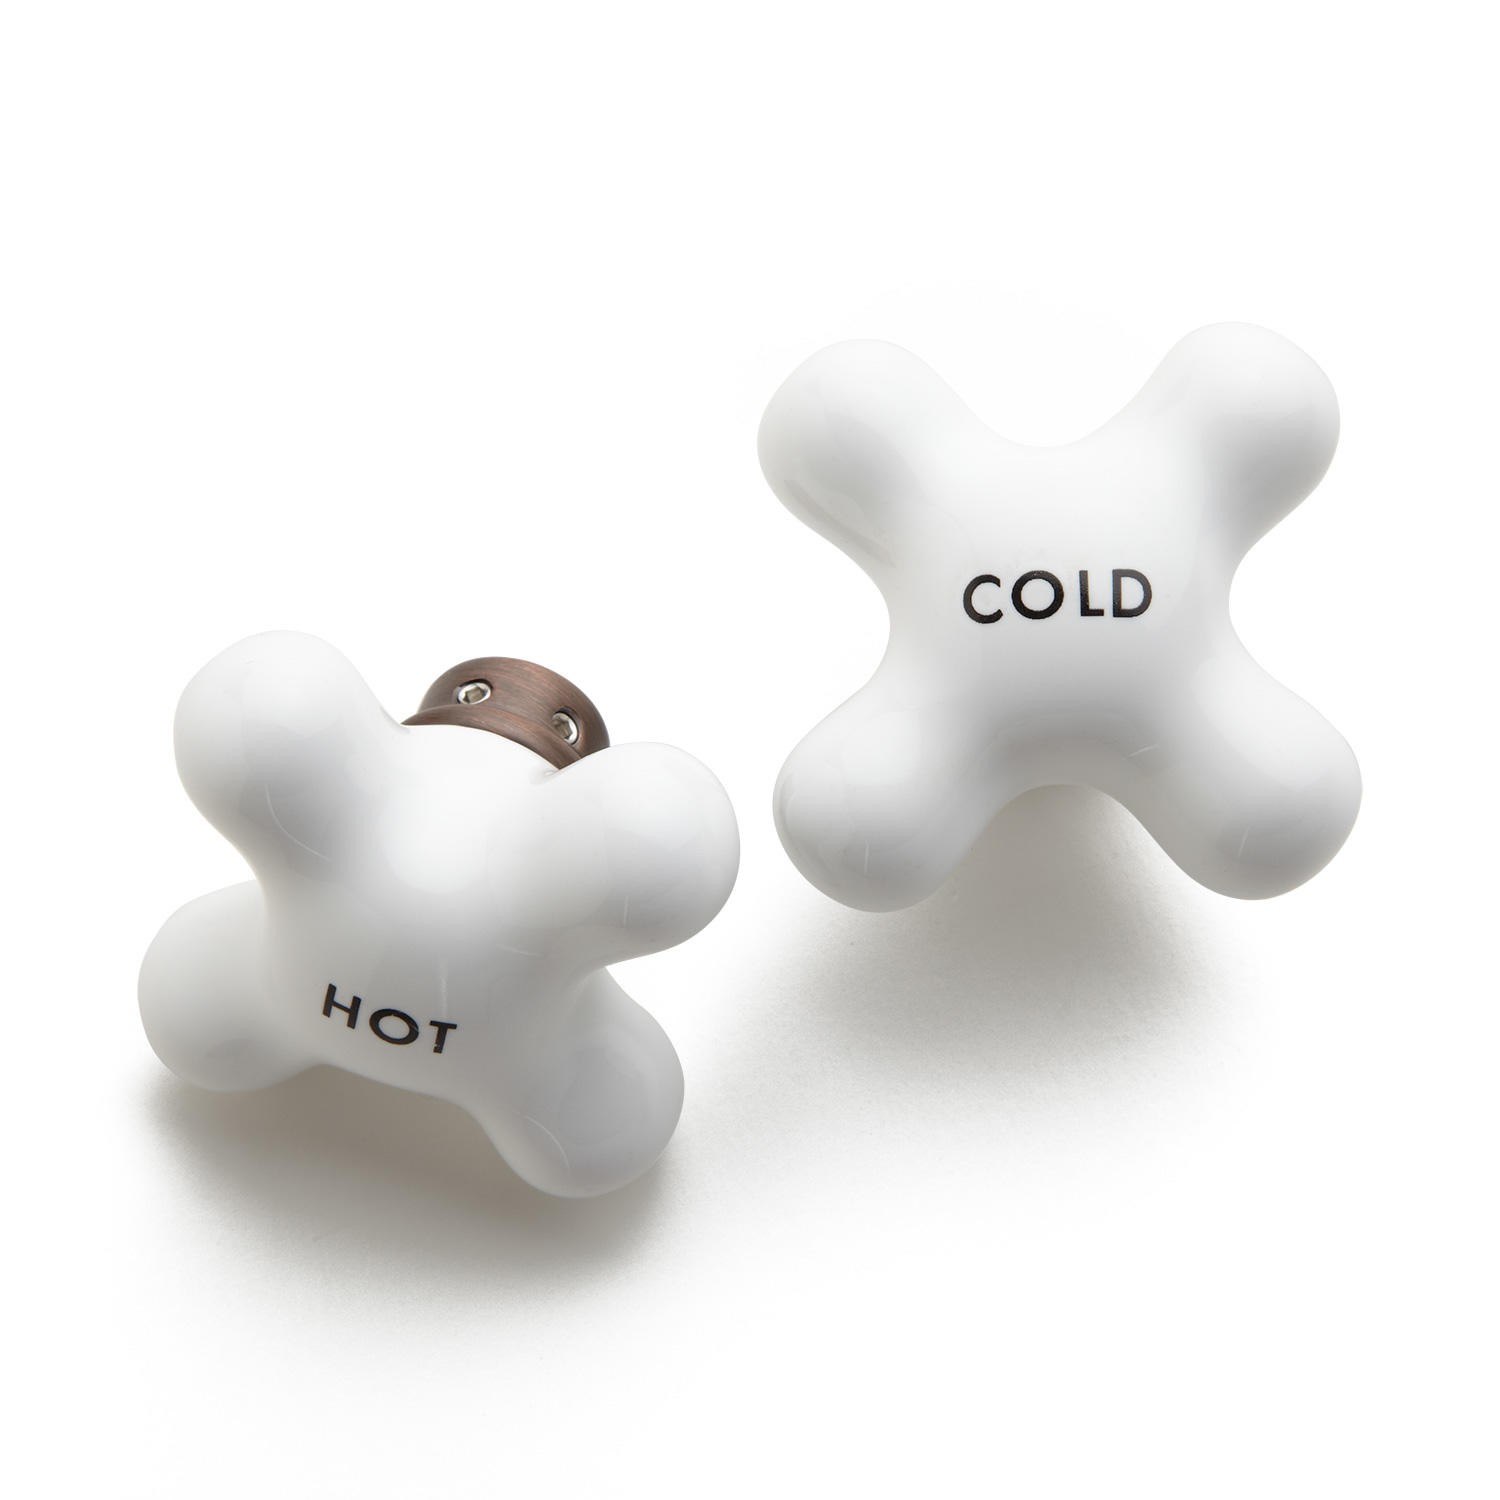 hot-and-cold.jpg